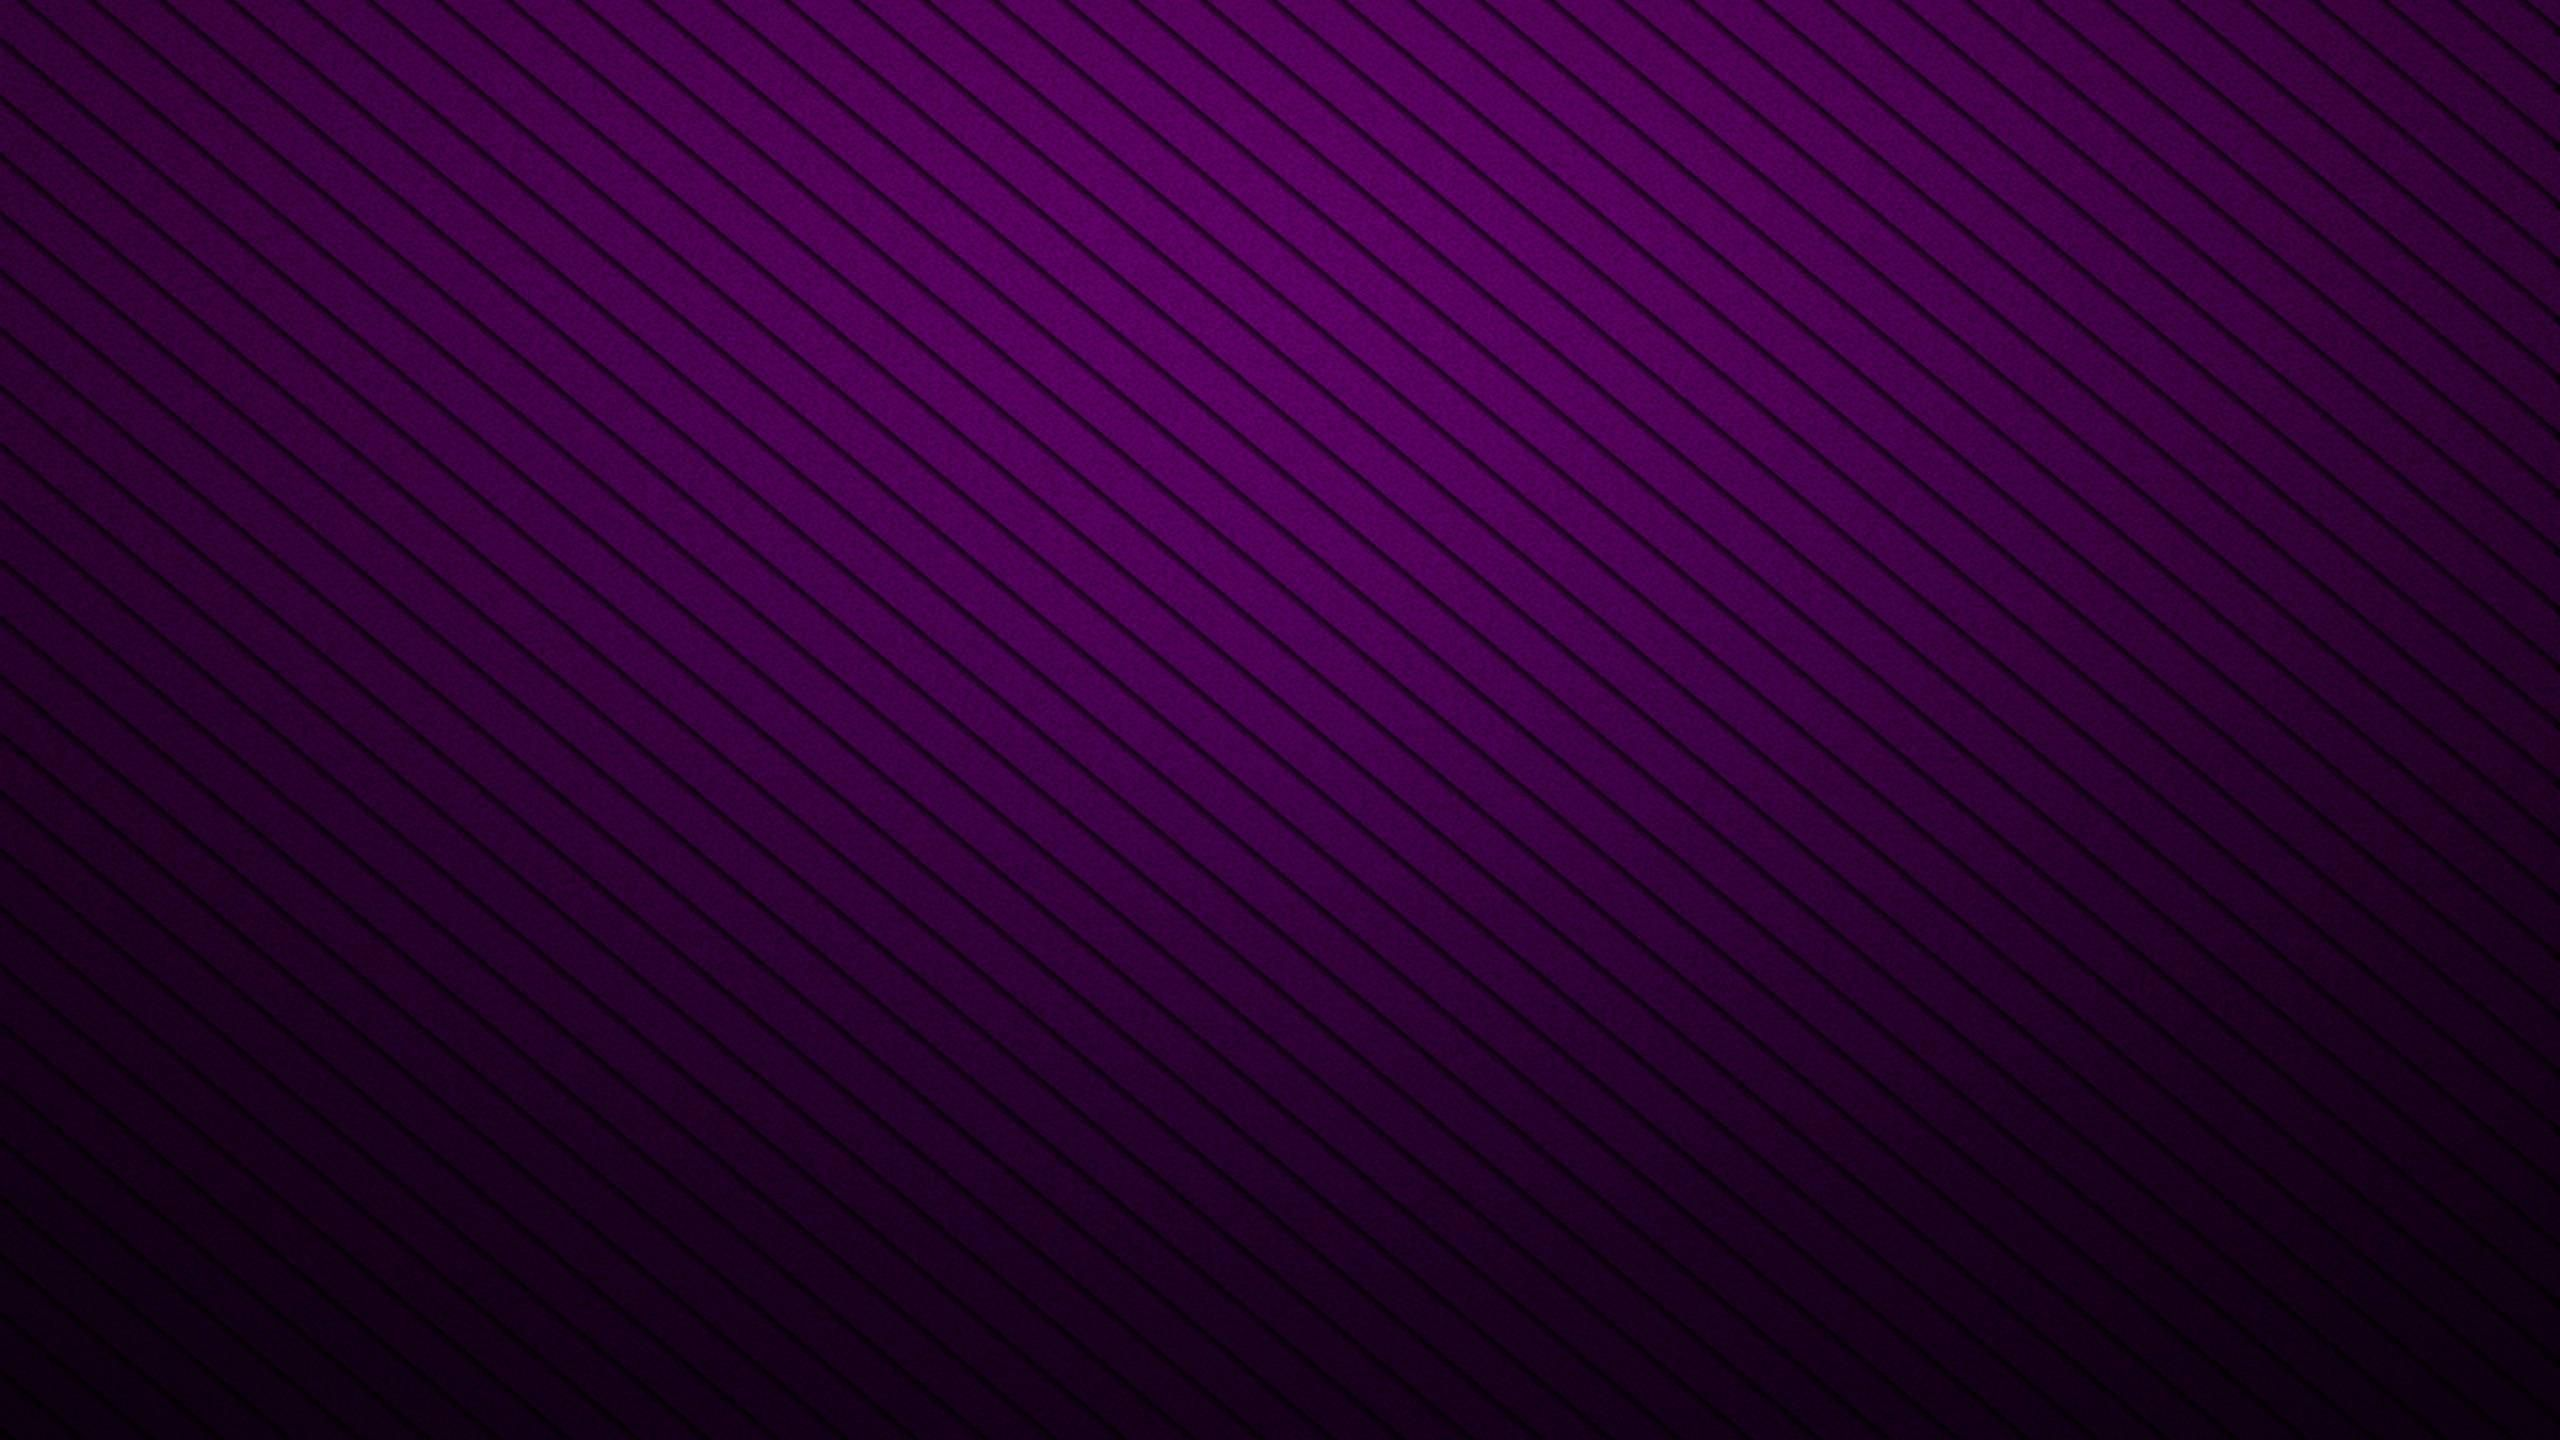 purple and black texture wallpaper textures pinterest